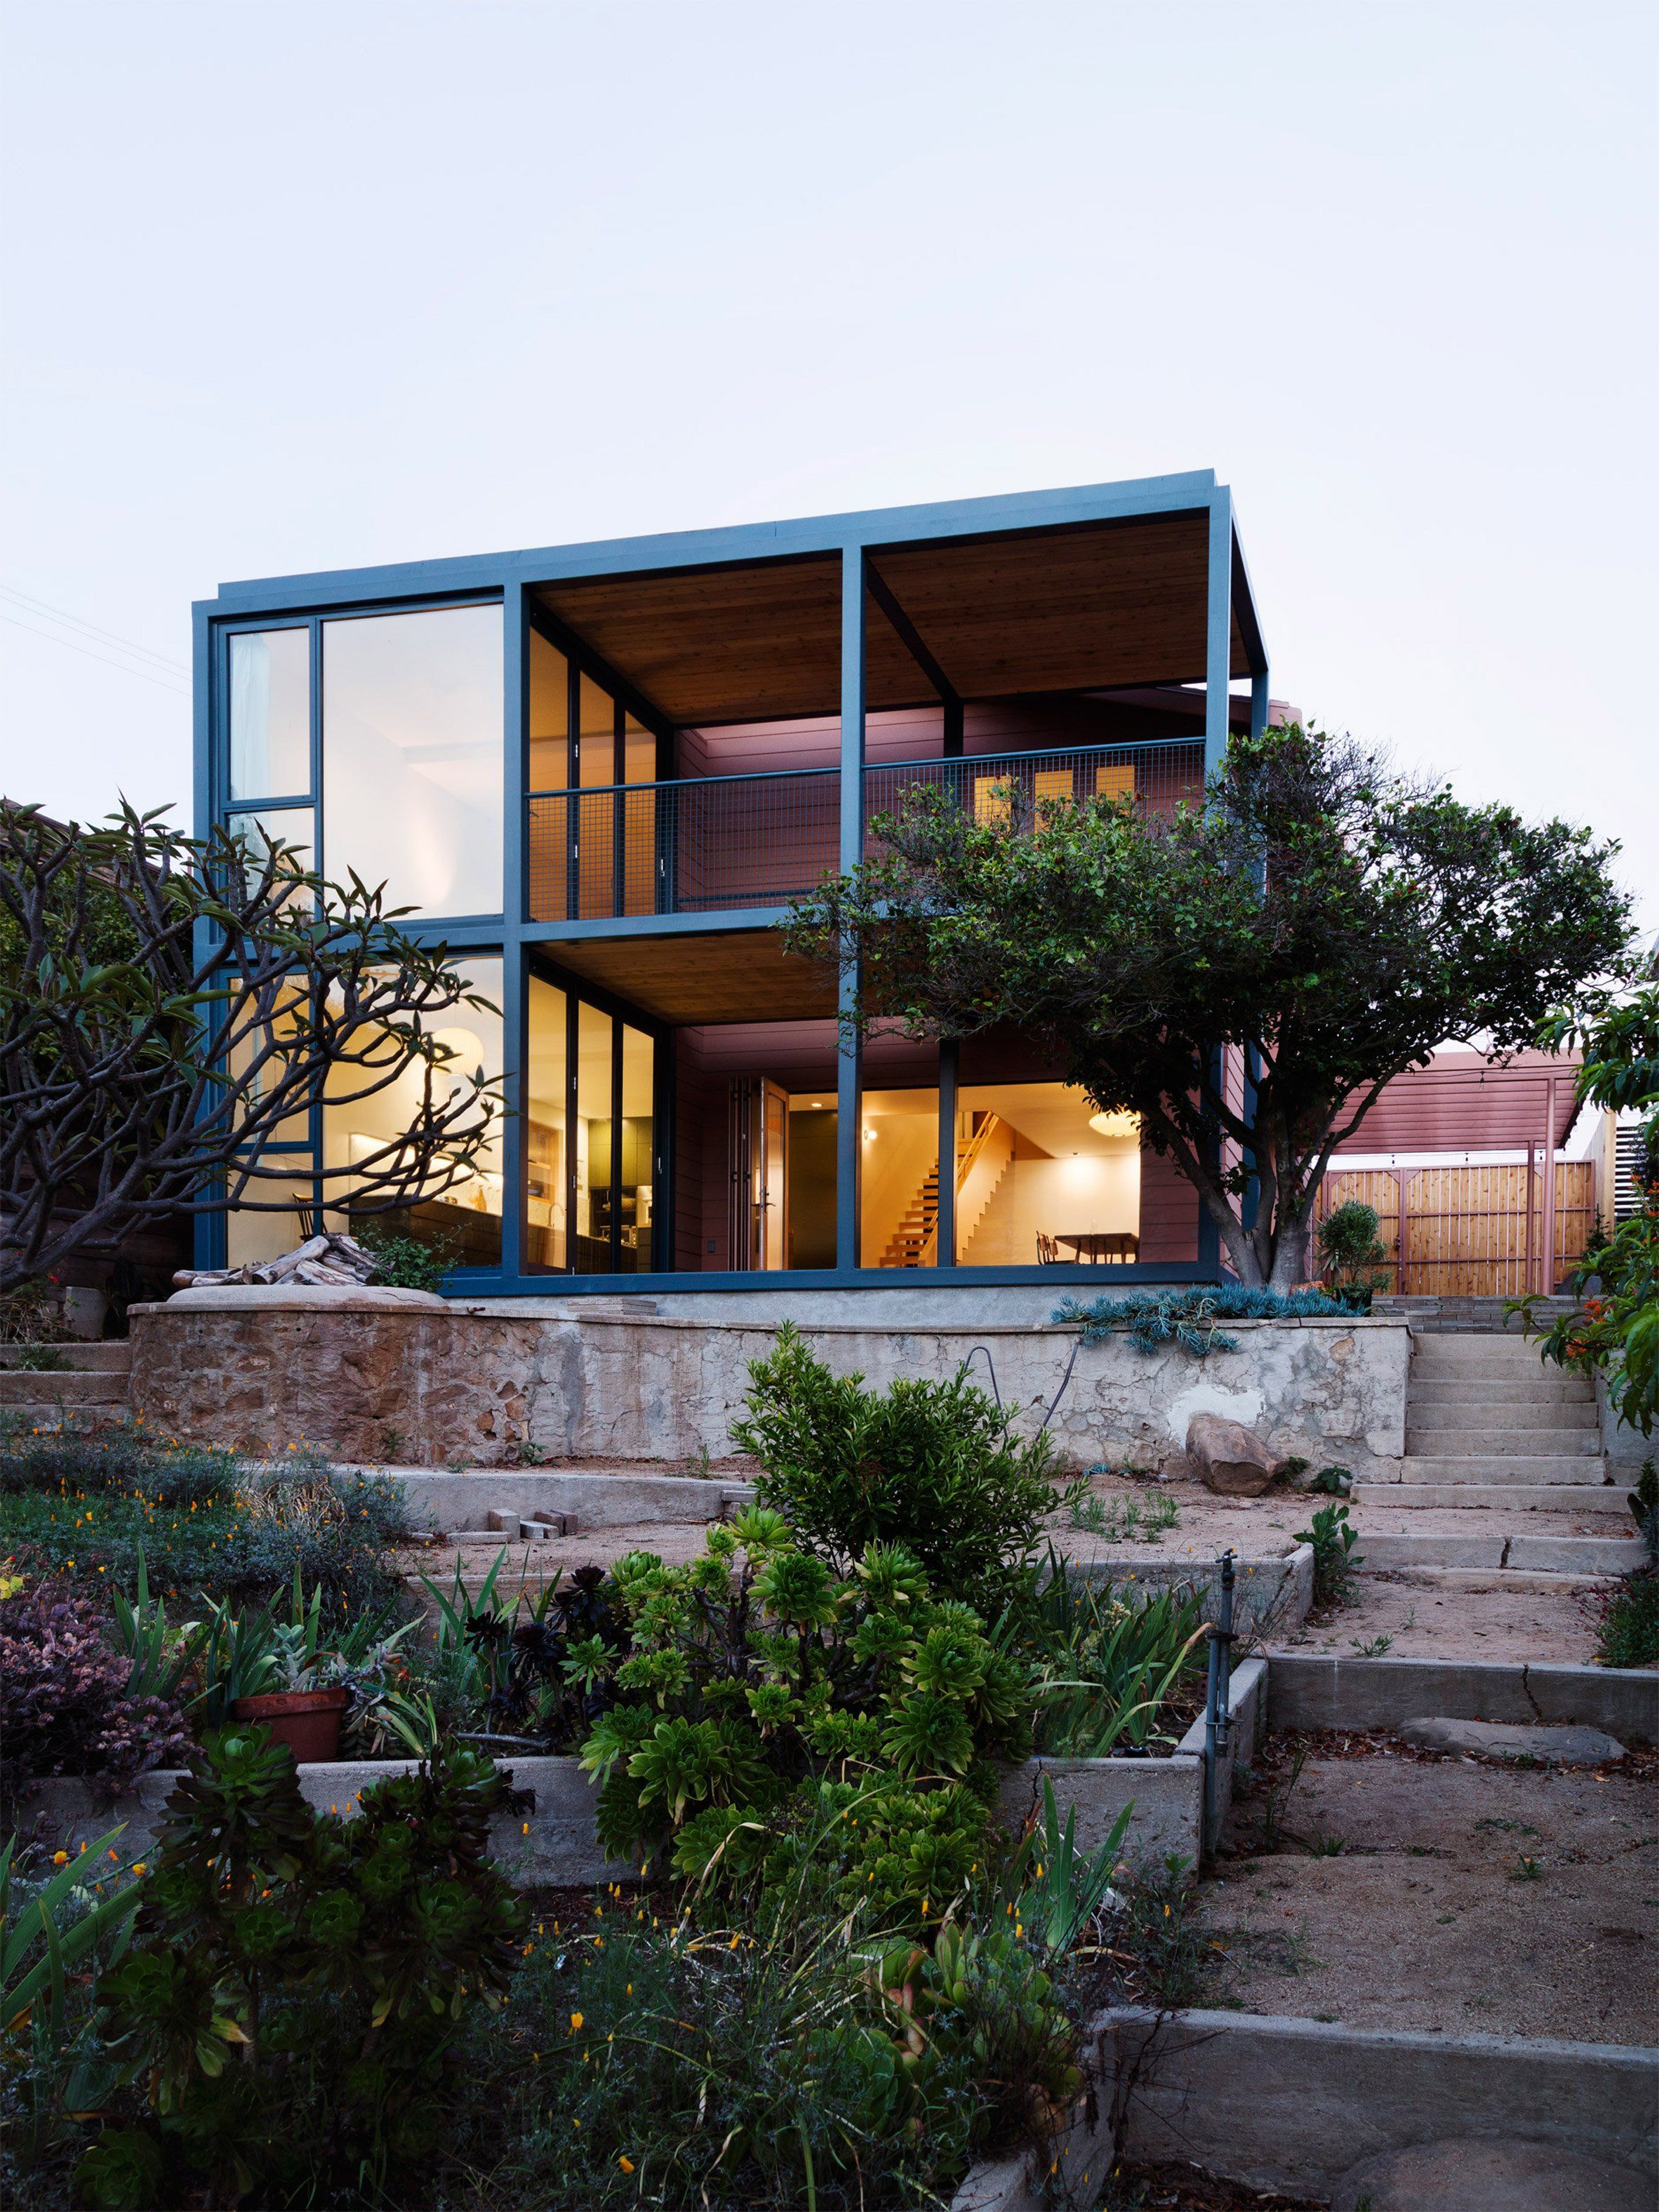 Productora adds steel frame extension to pink bungalow